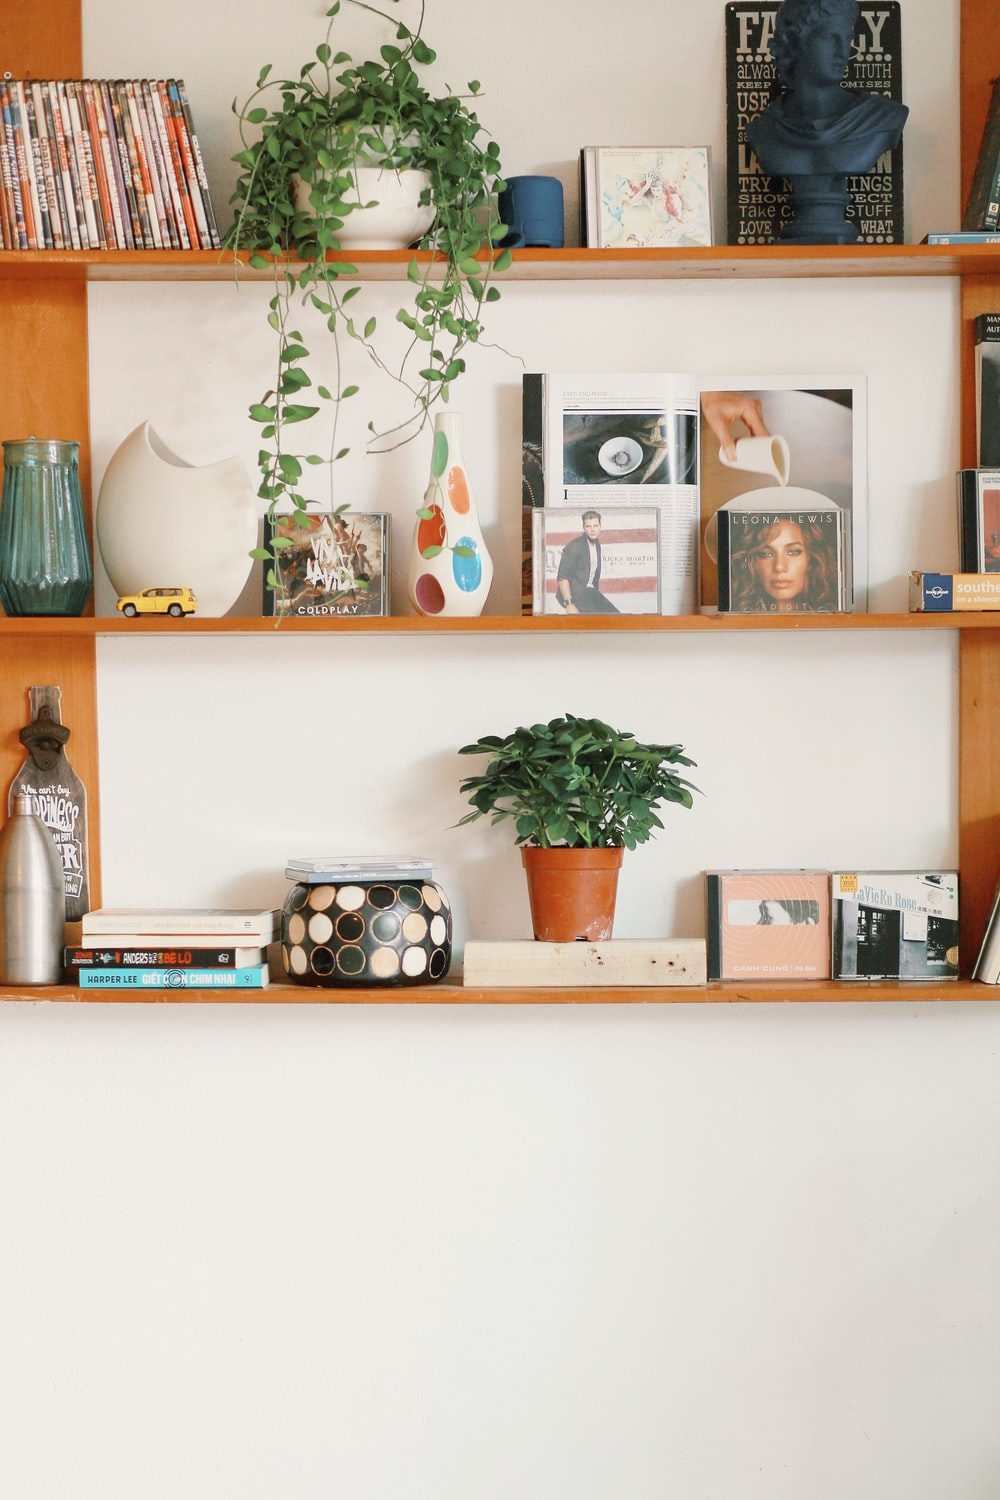 green potted plant on white wooden shelf